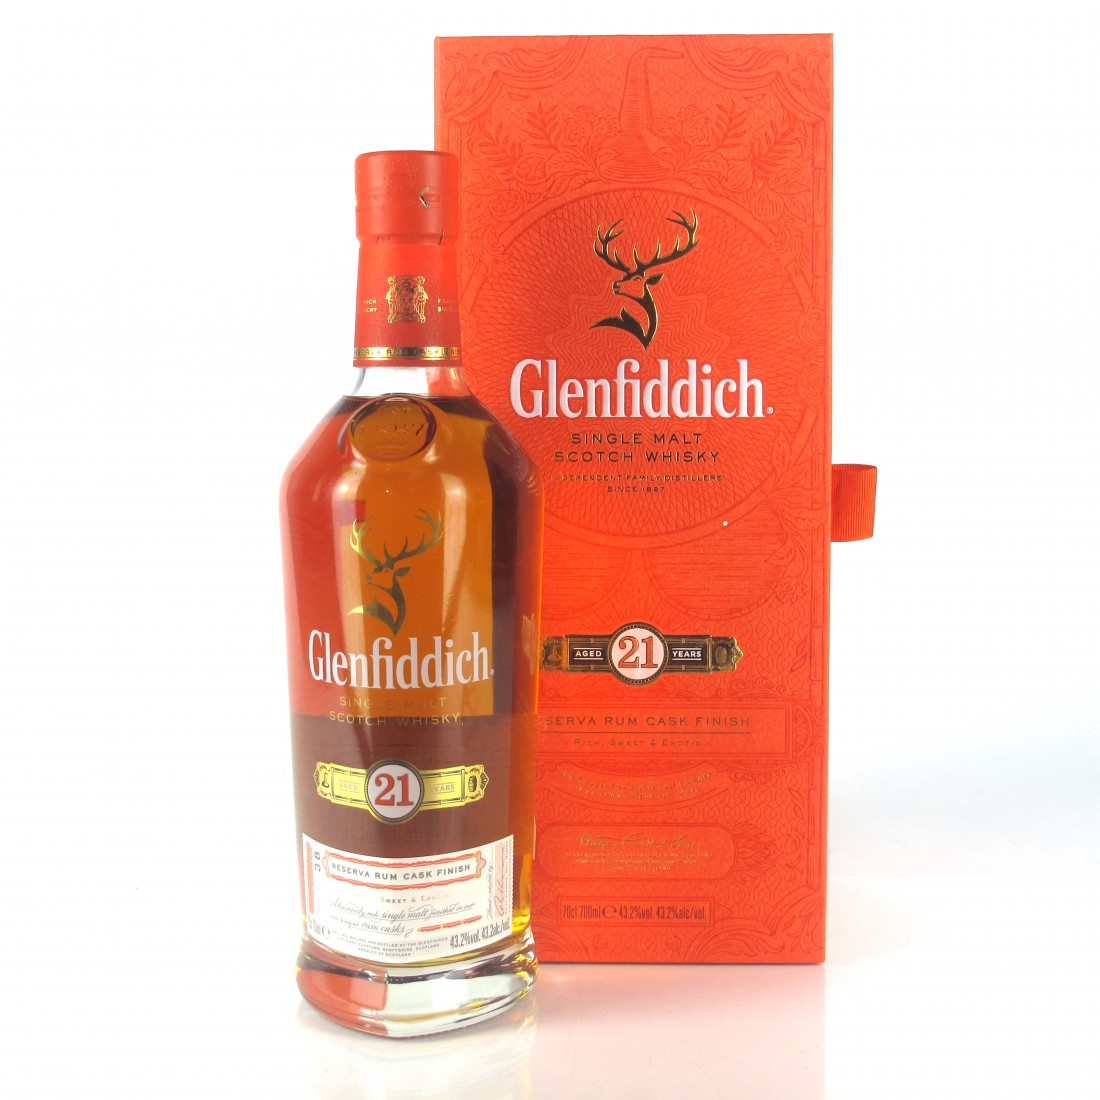 Glenfiddich 21 Year Old Reserva Rum Finish